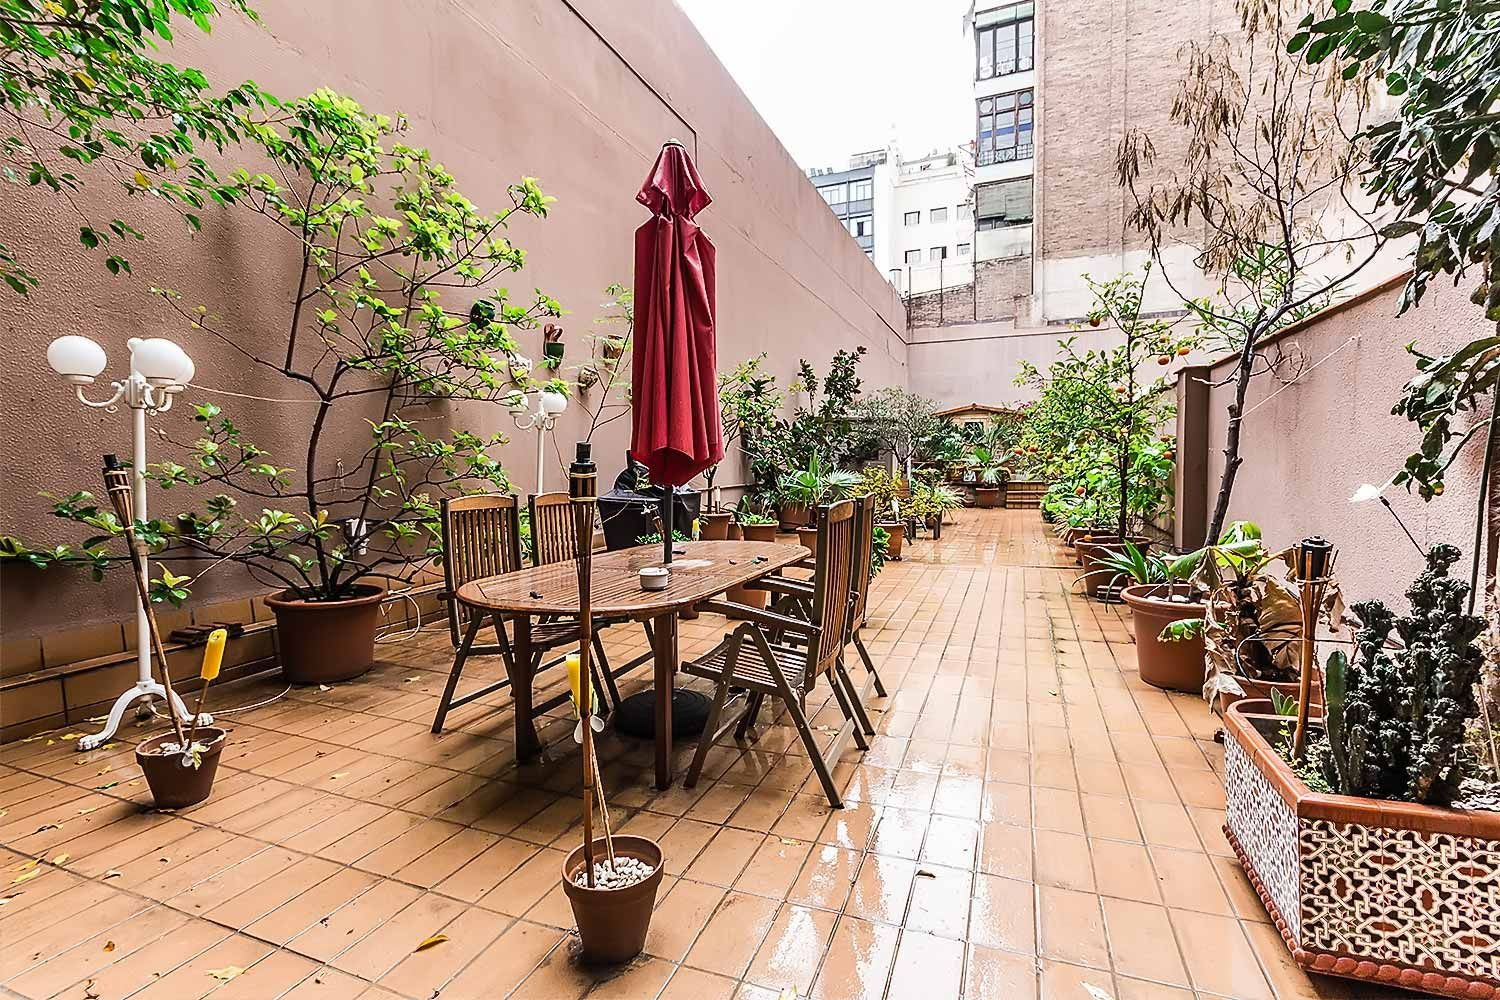 Fabulous aparment at Barcelona center. Make your own